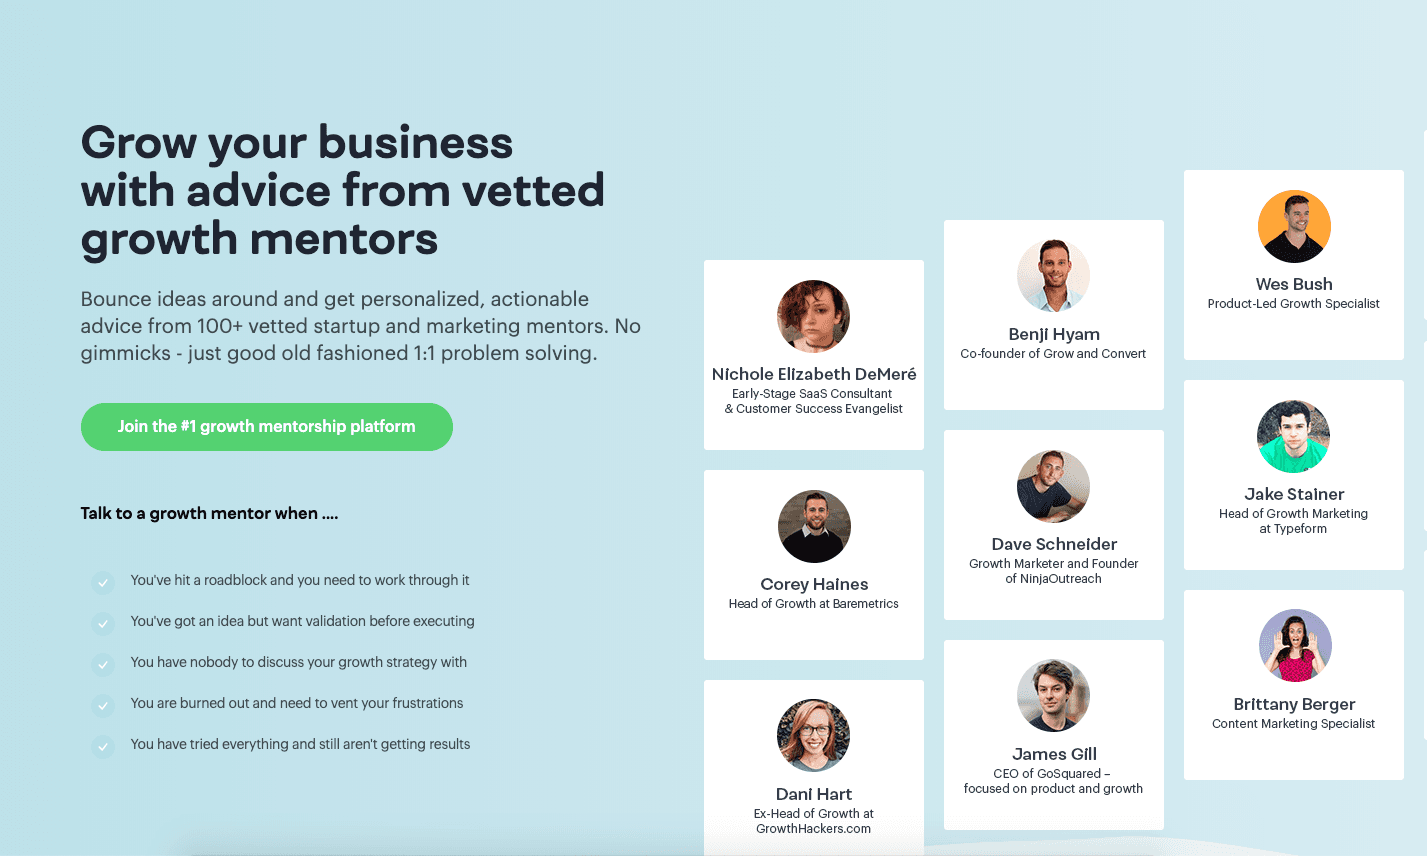 How GrowthMentor Drastically Reduced Their Support Tickets by 250% with Userpilot